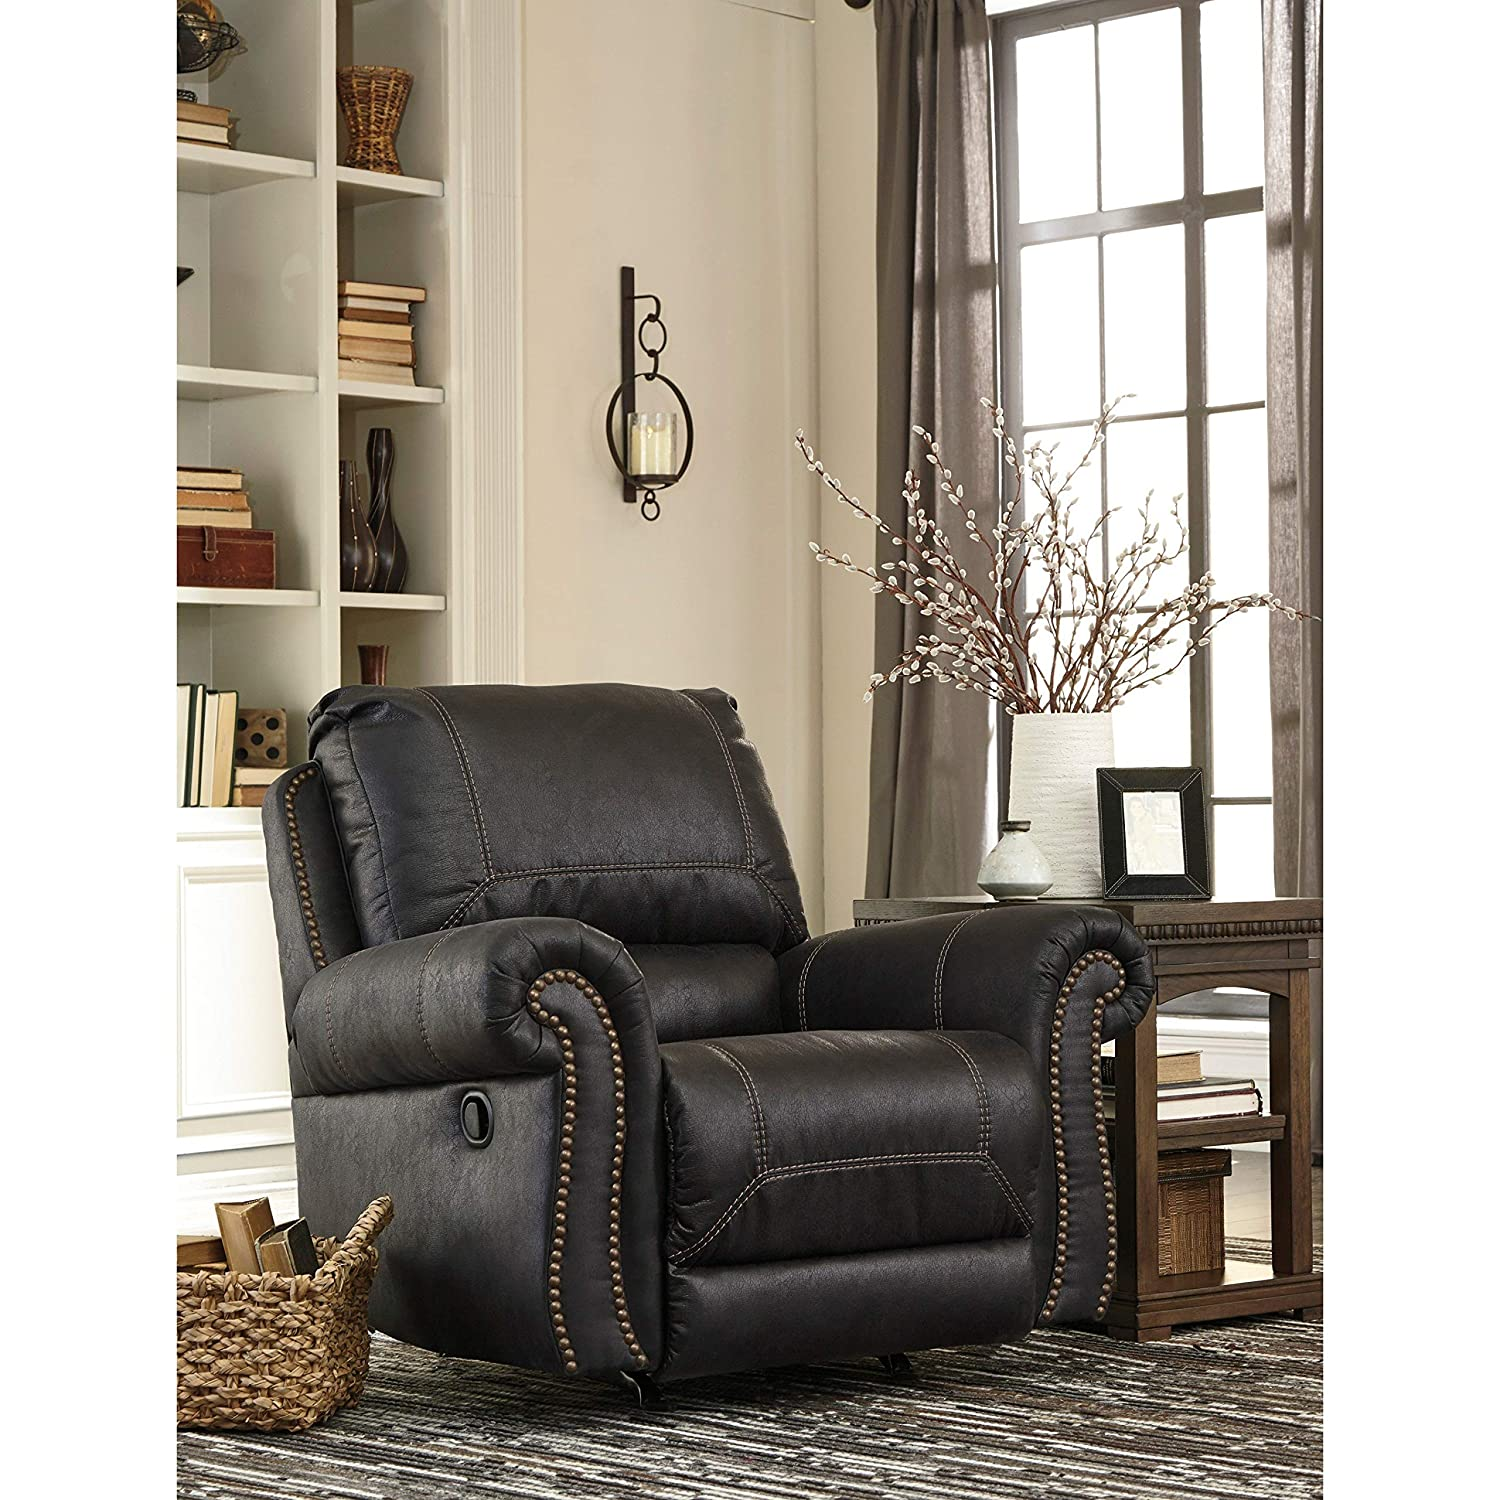 Amazon com ashley furniture signature design milhaven faux leather upholstered rocker recliner contemporary black kitchen dining